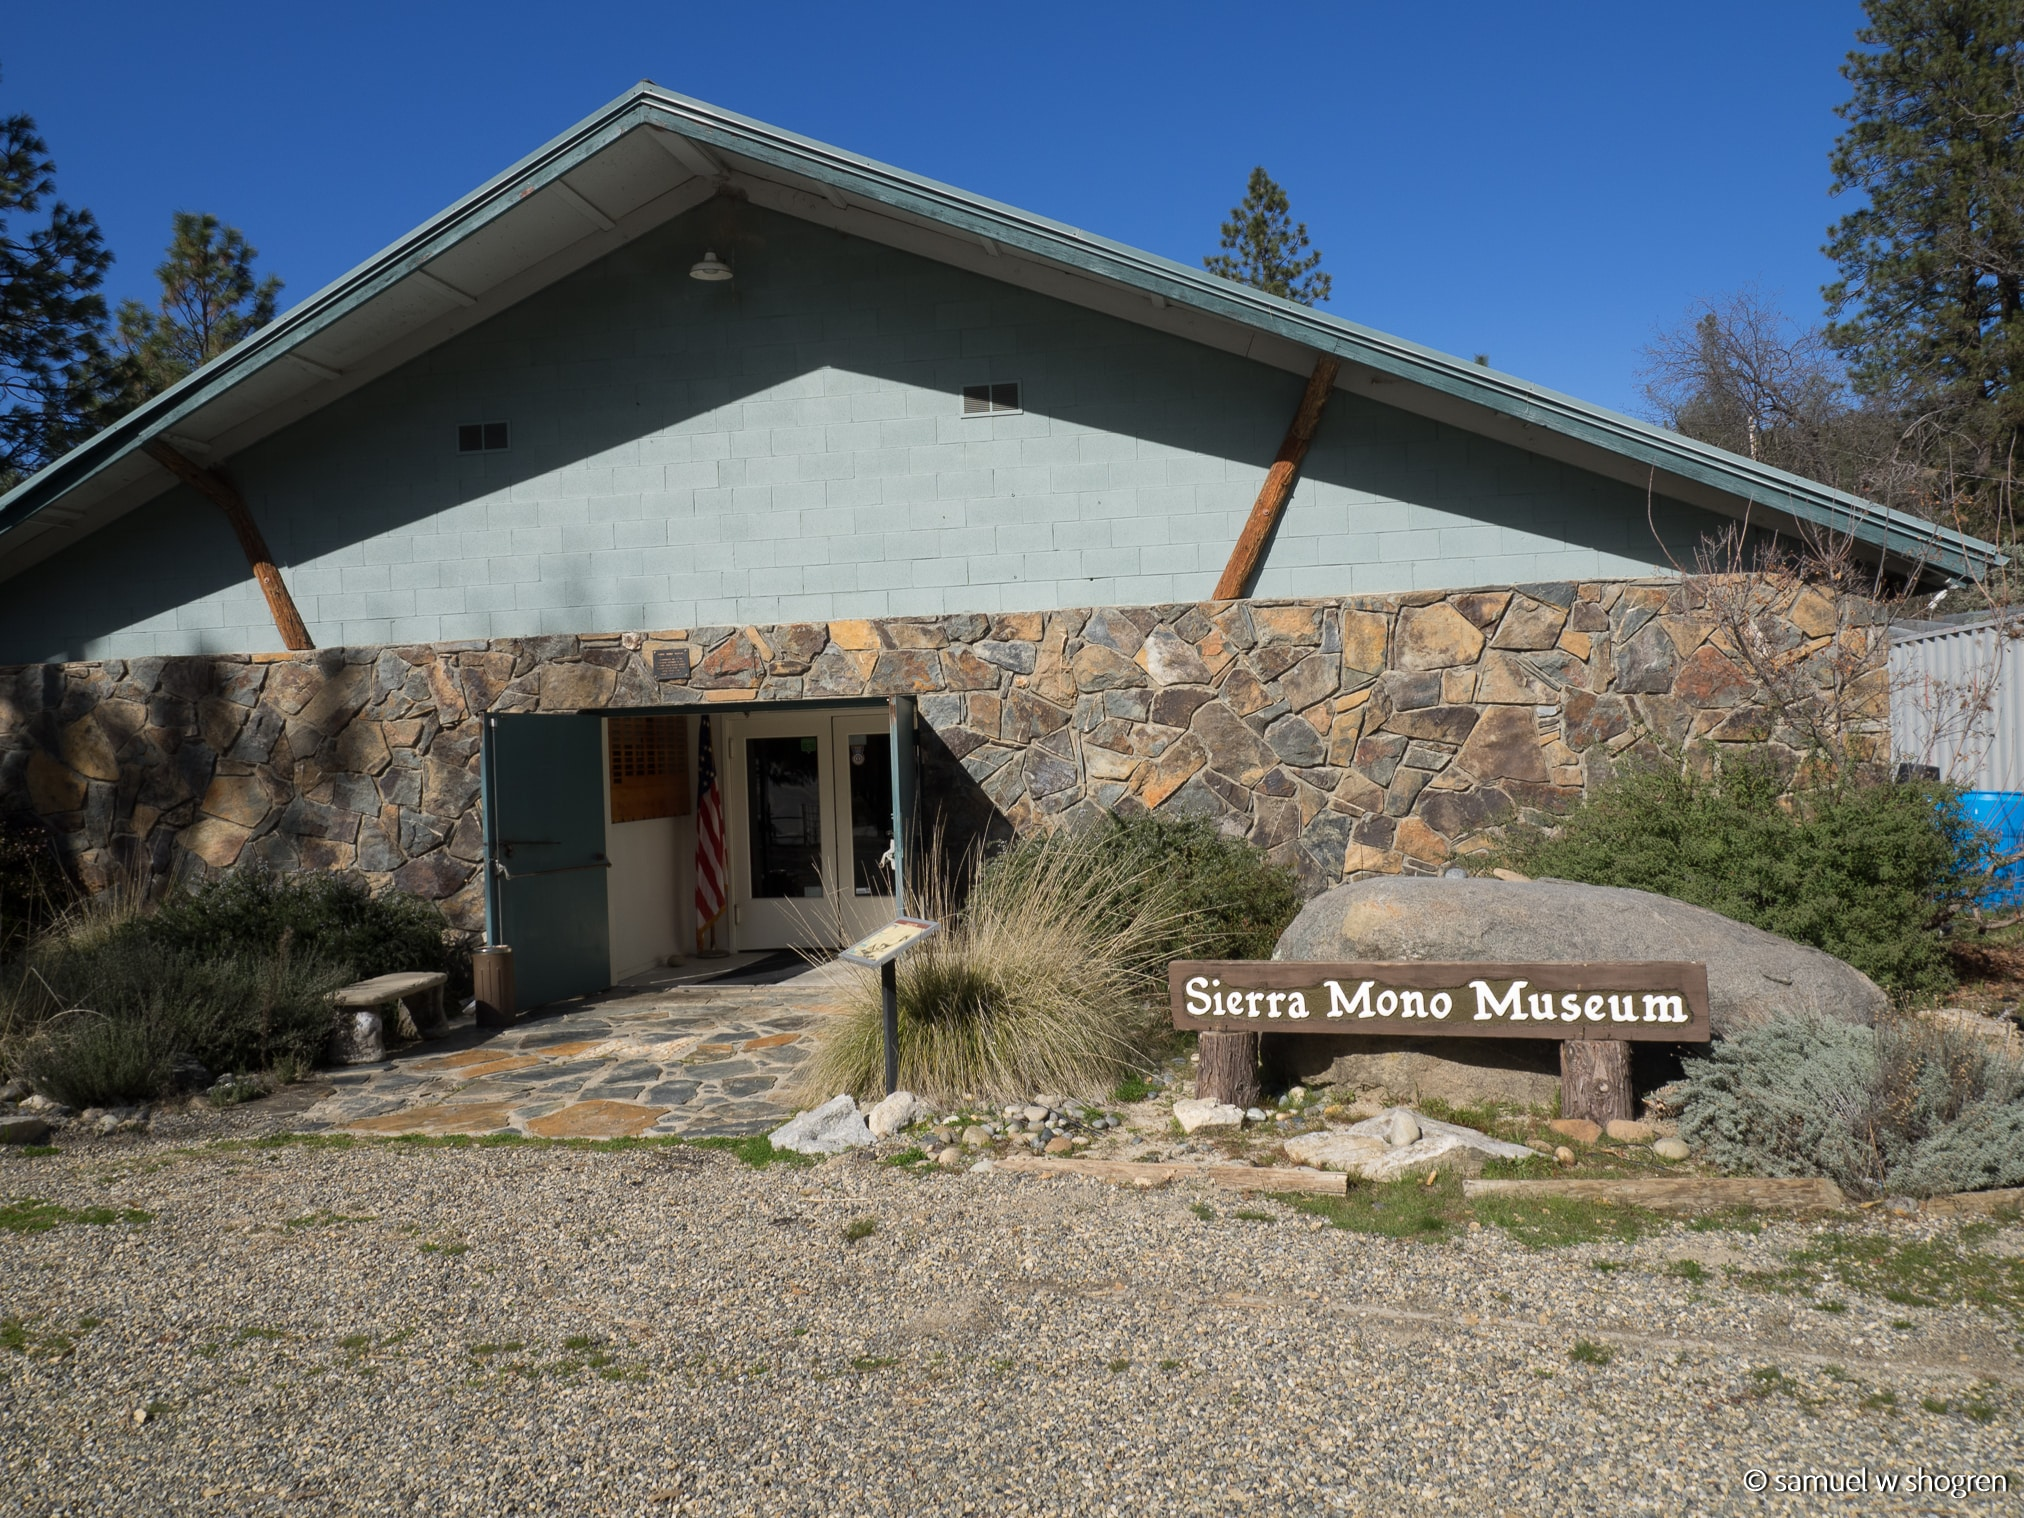 An exterior shot of the small, cinderblock Sierra Mono Museum.